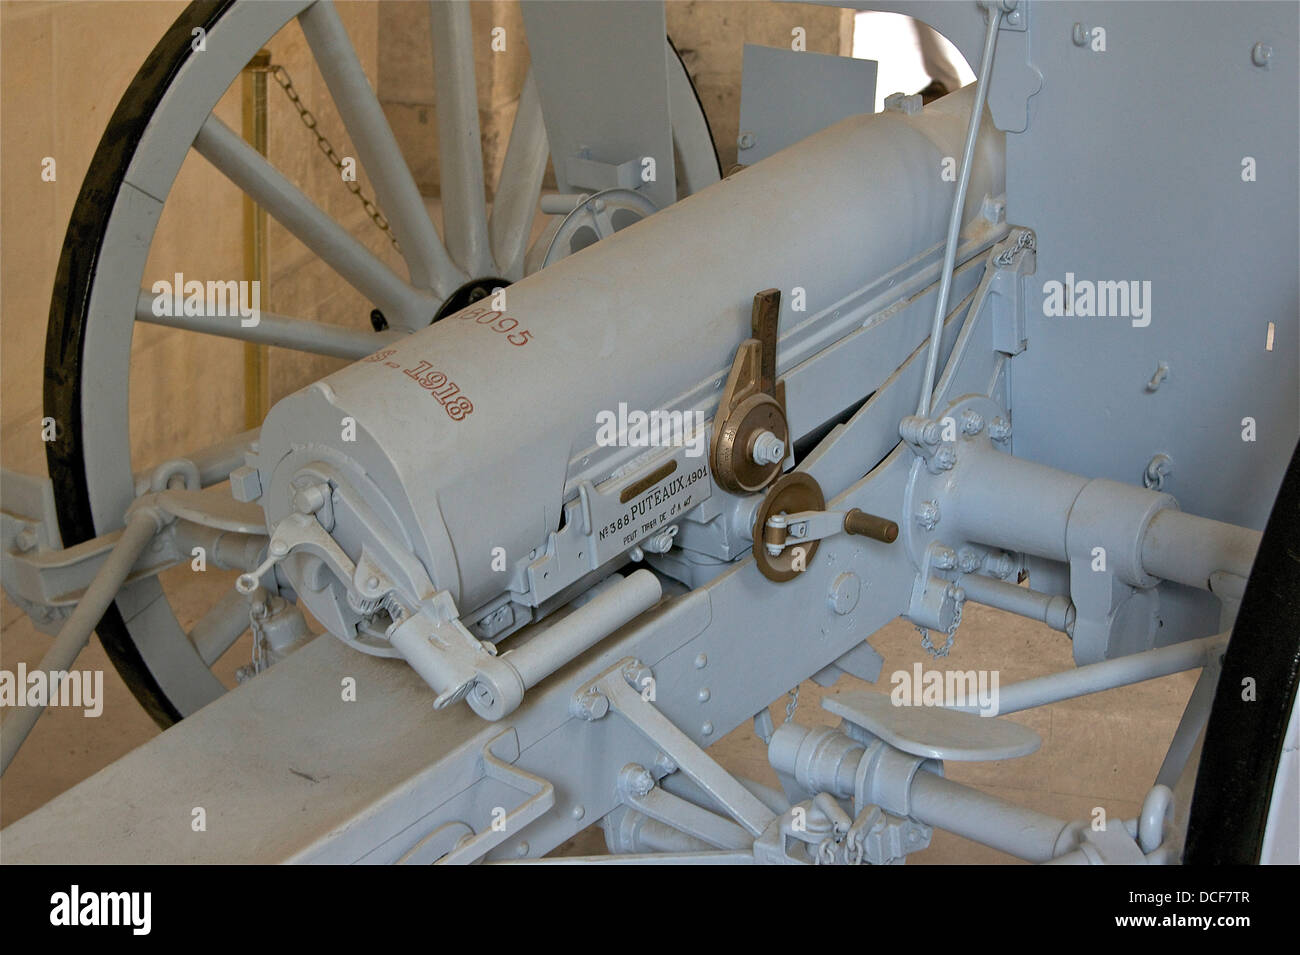 detail of the head of a field gun '75', model 1897, No. 18095, manufactured in 1918 in Bourges - Stock Image